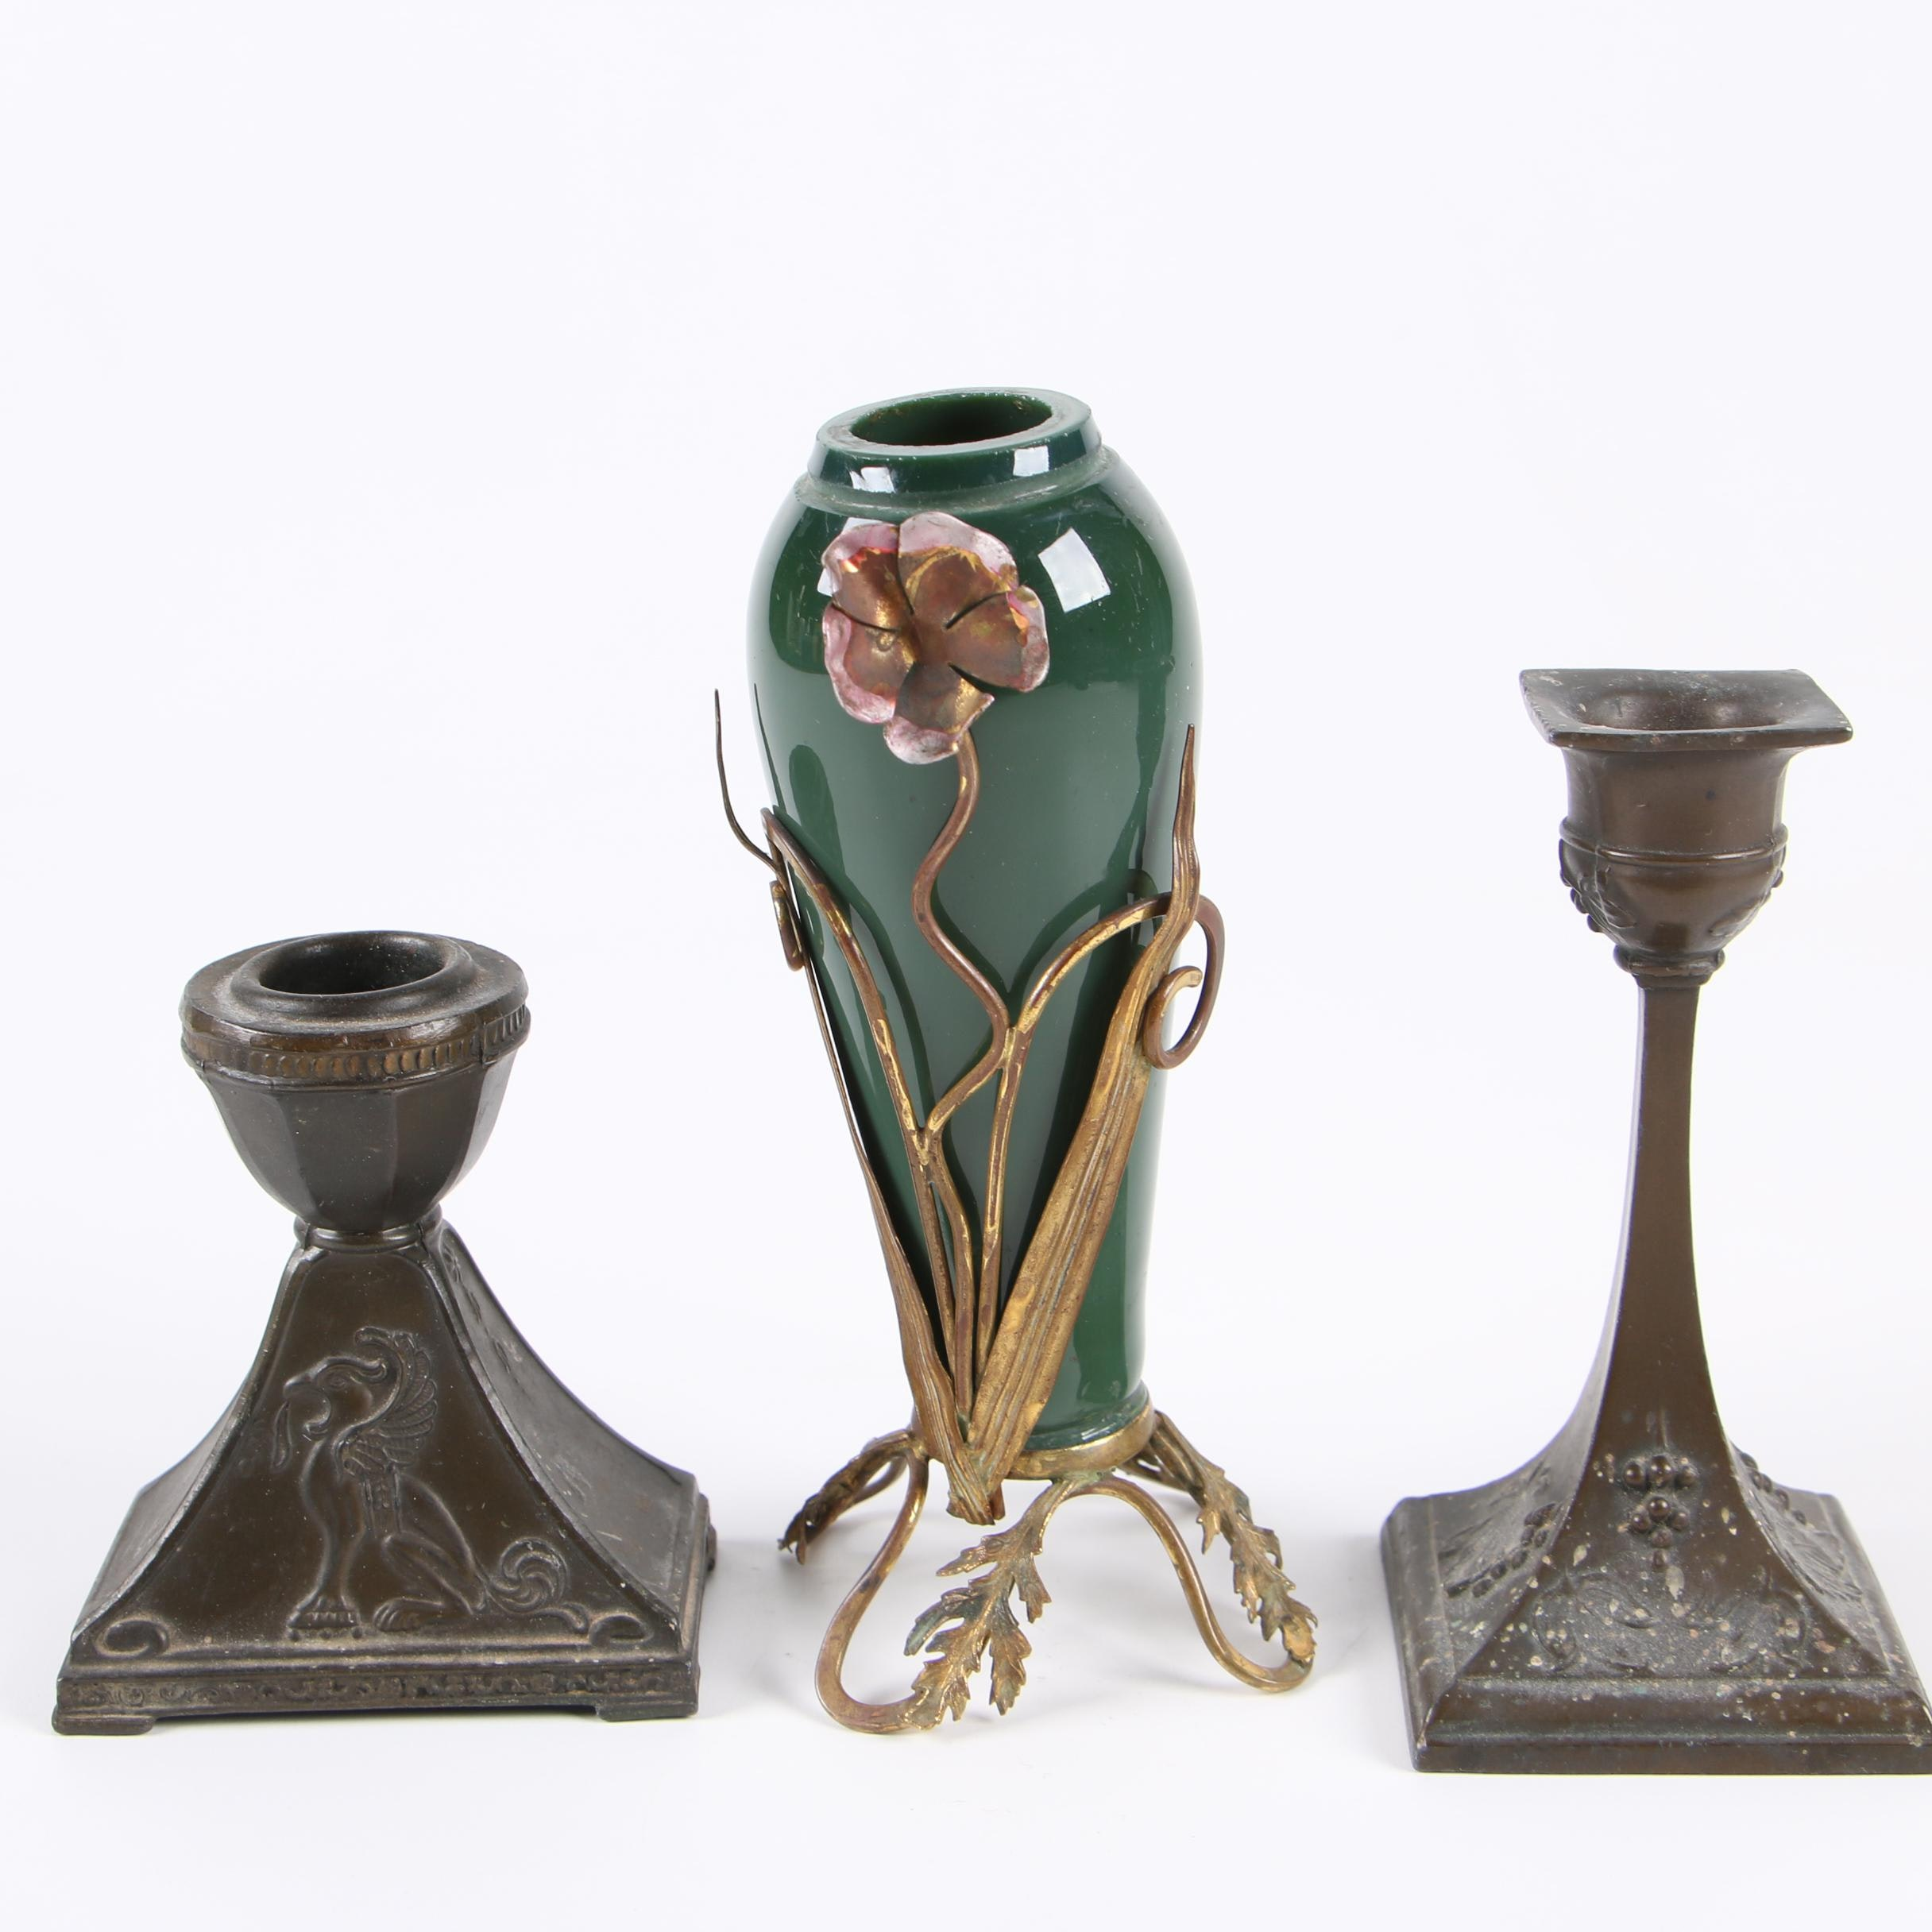 Art Nouveau Ormalu-Mounted Glass Bud Vase with Cast Metal Candlesticks